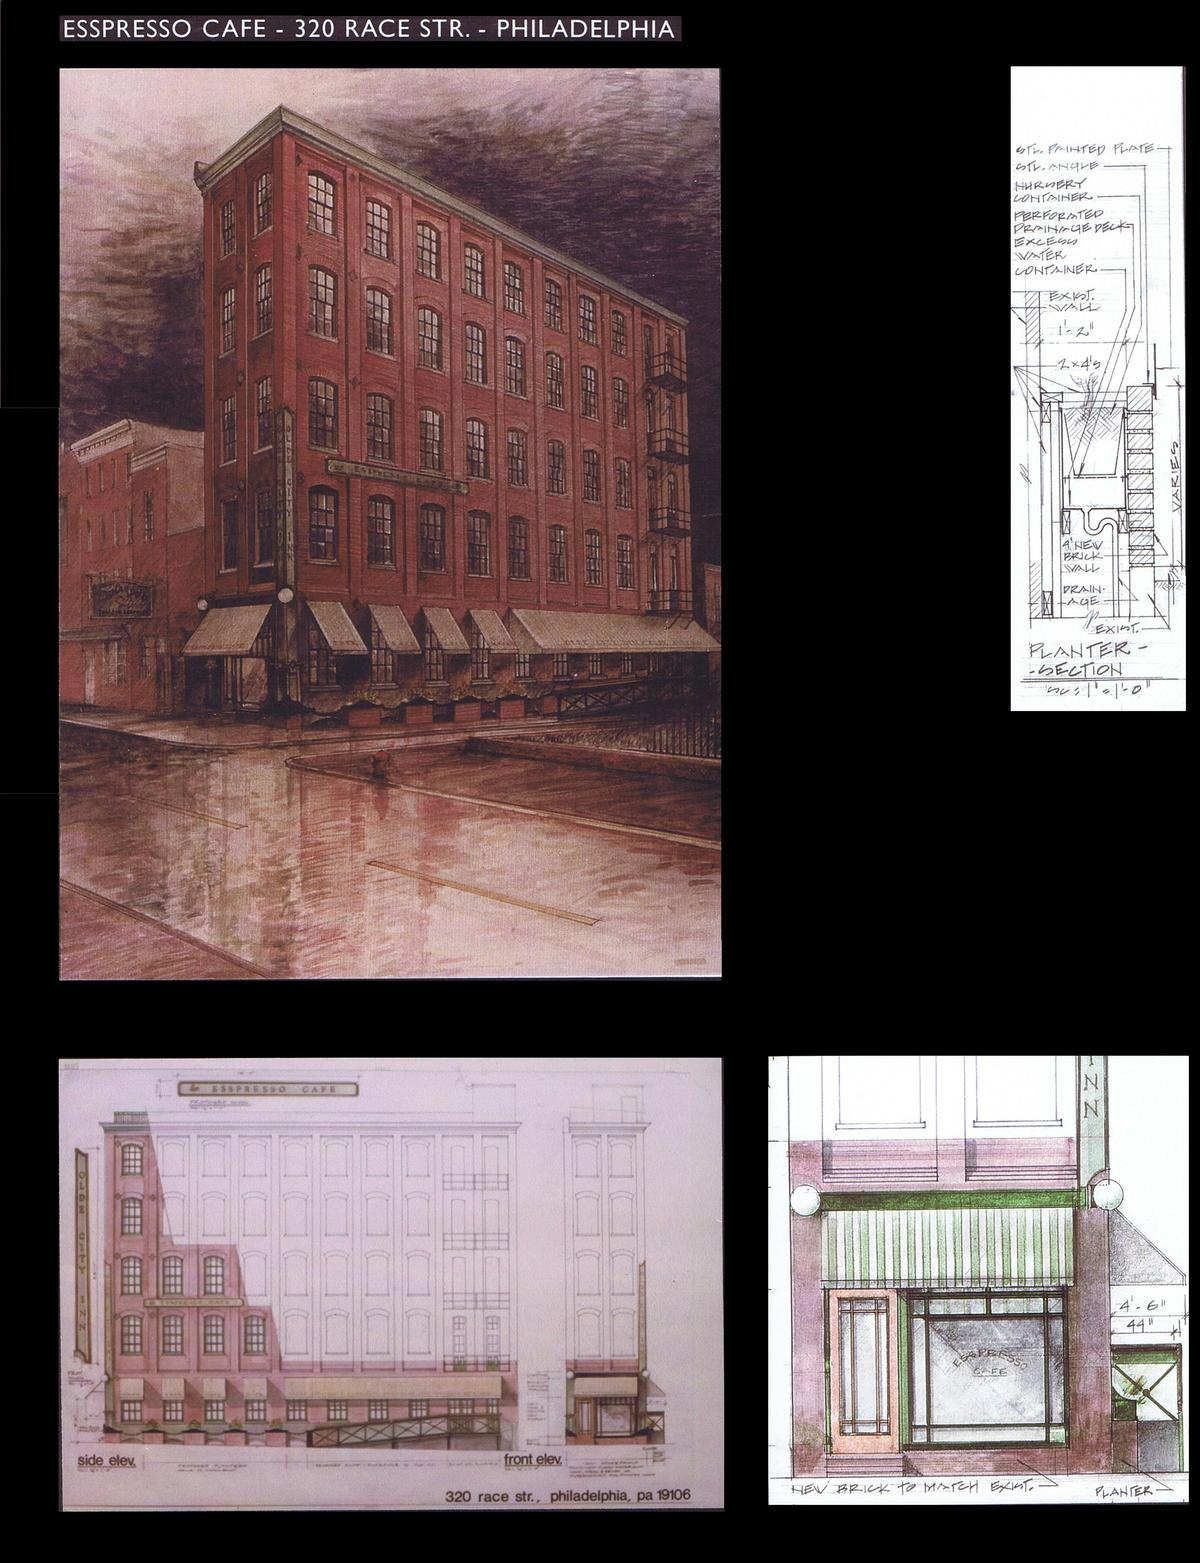 Perspective View, Elevations, Details